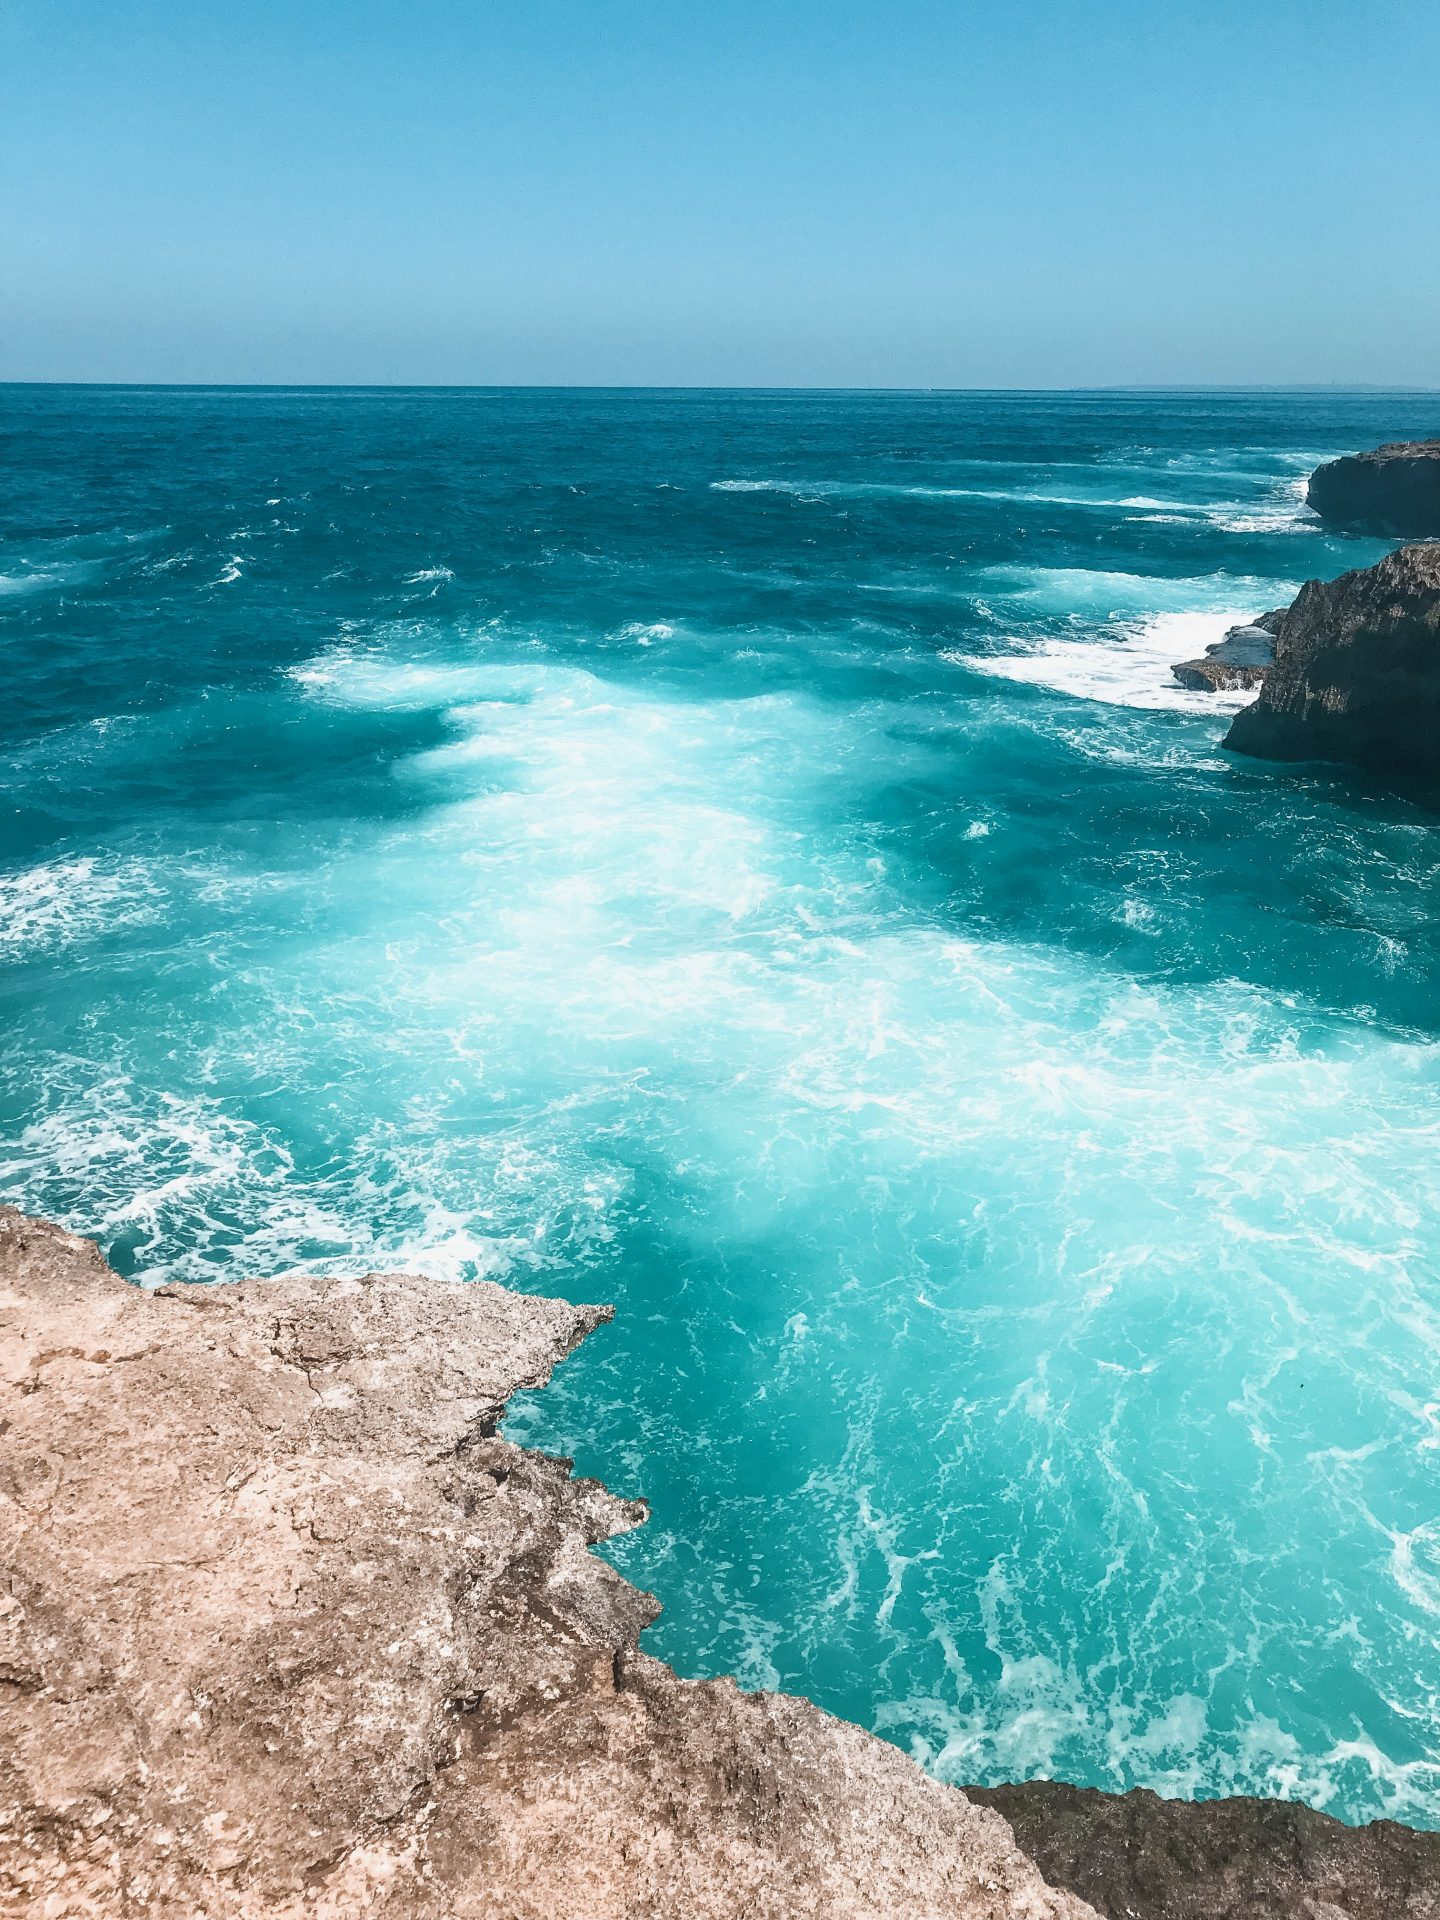 the blue lagoon on nusa ceningan, crystal blue water with an amazing view in bali